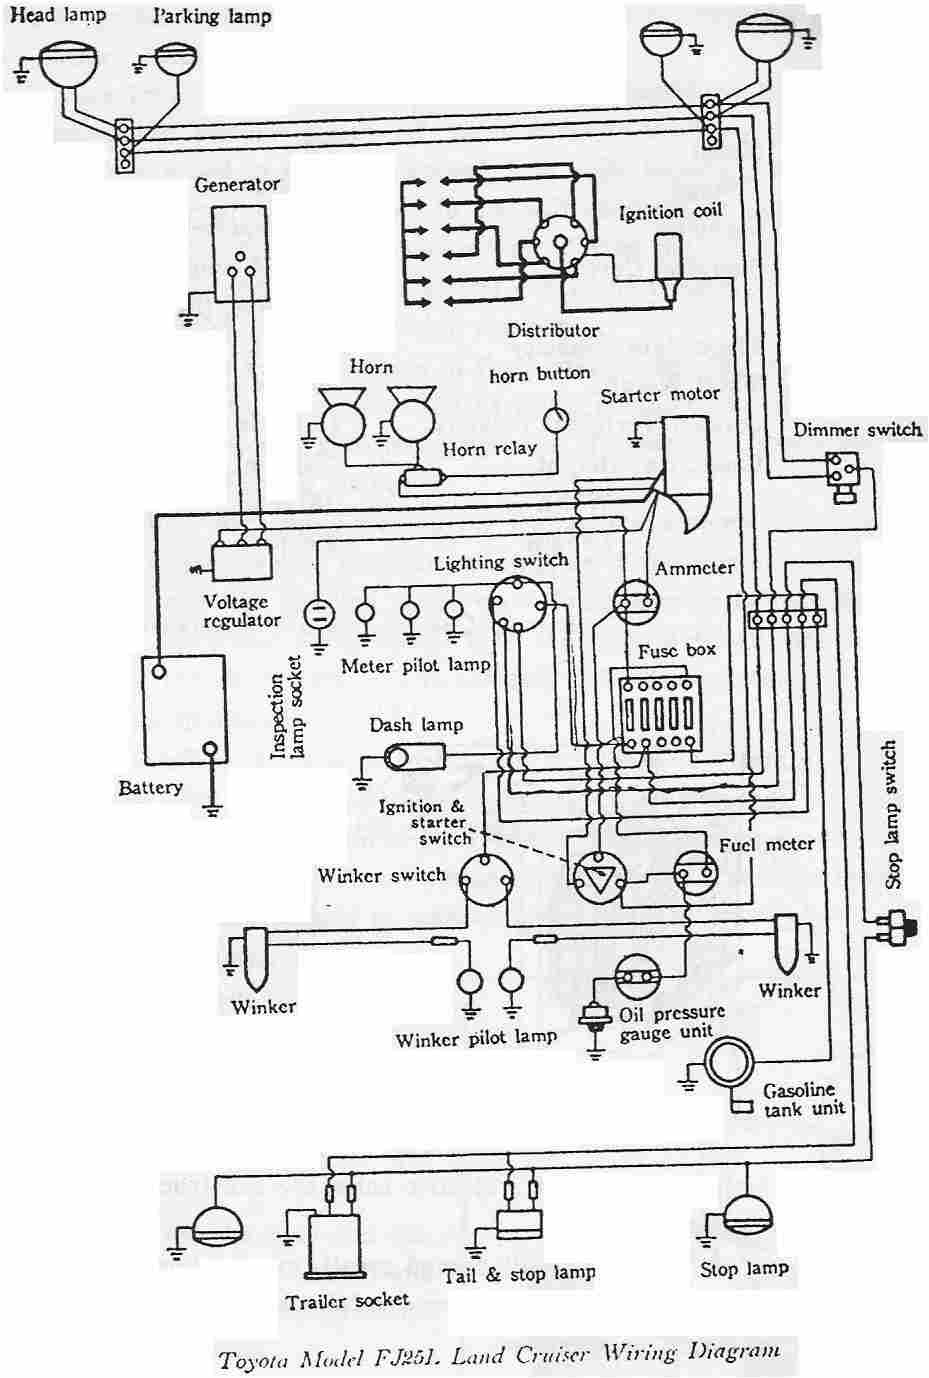 2000 Toyota Land Cruiser Electrical Diagram on Electrical Wiring Diagram